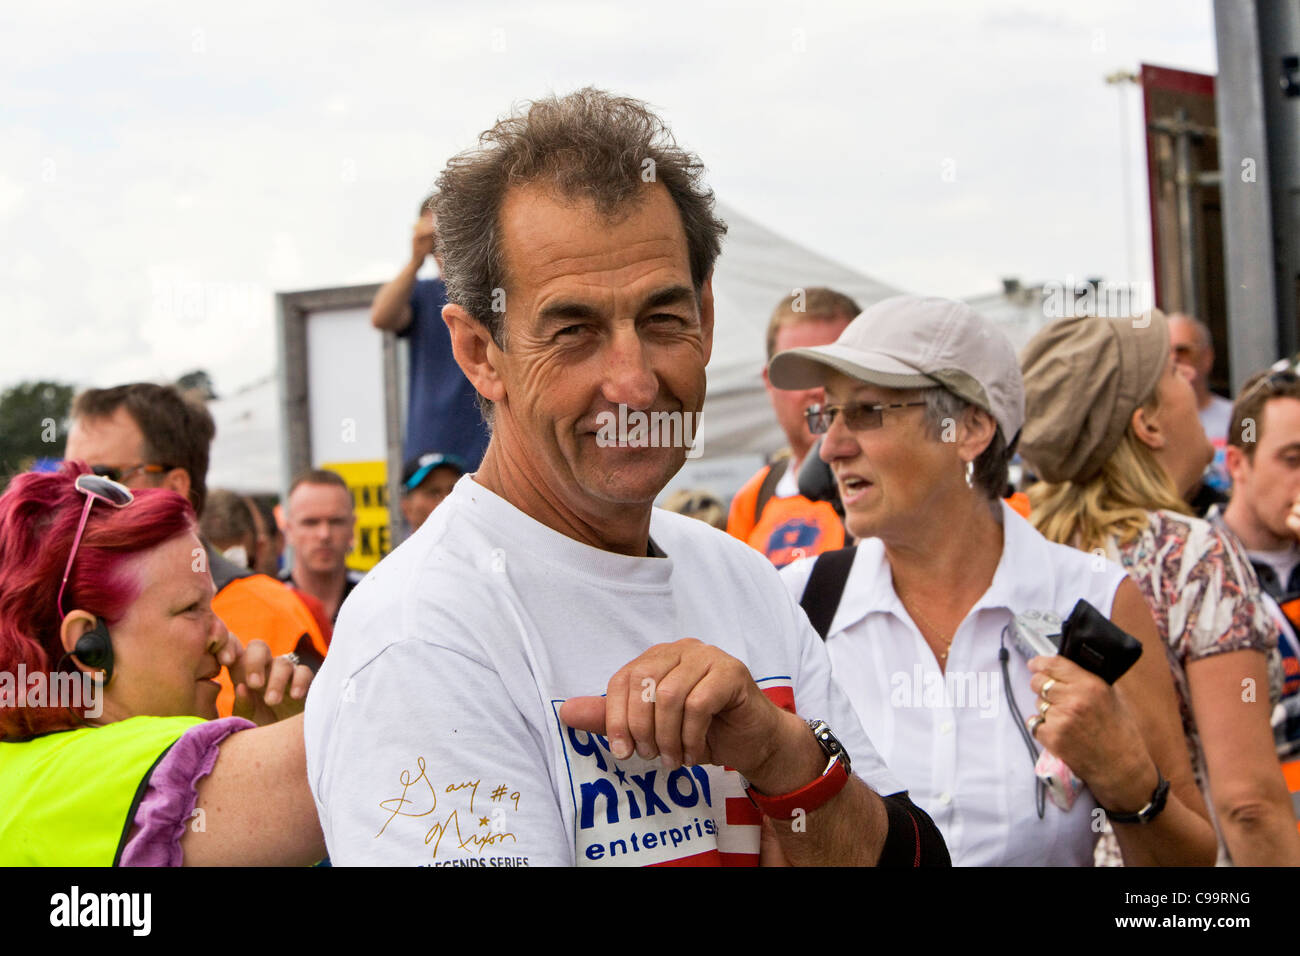 Steve Parrish, BBC Motor Bike commentator at Mallory Park Racing Circuit, Leicestershire.media - Stock Image